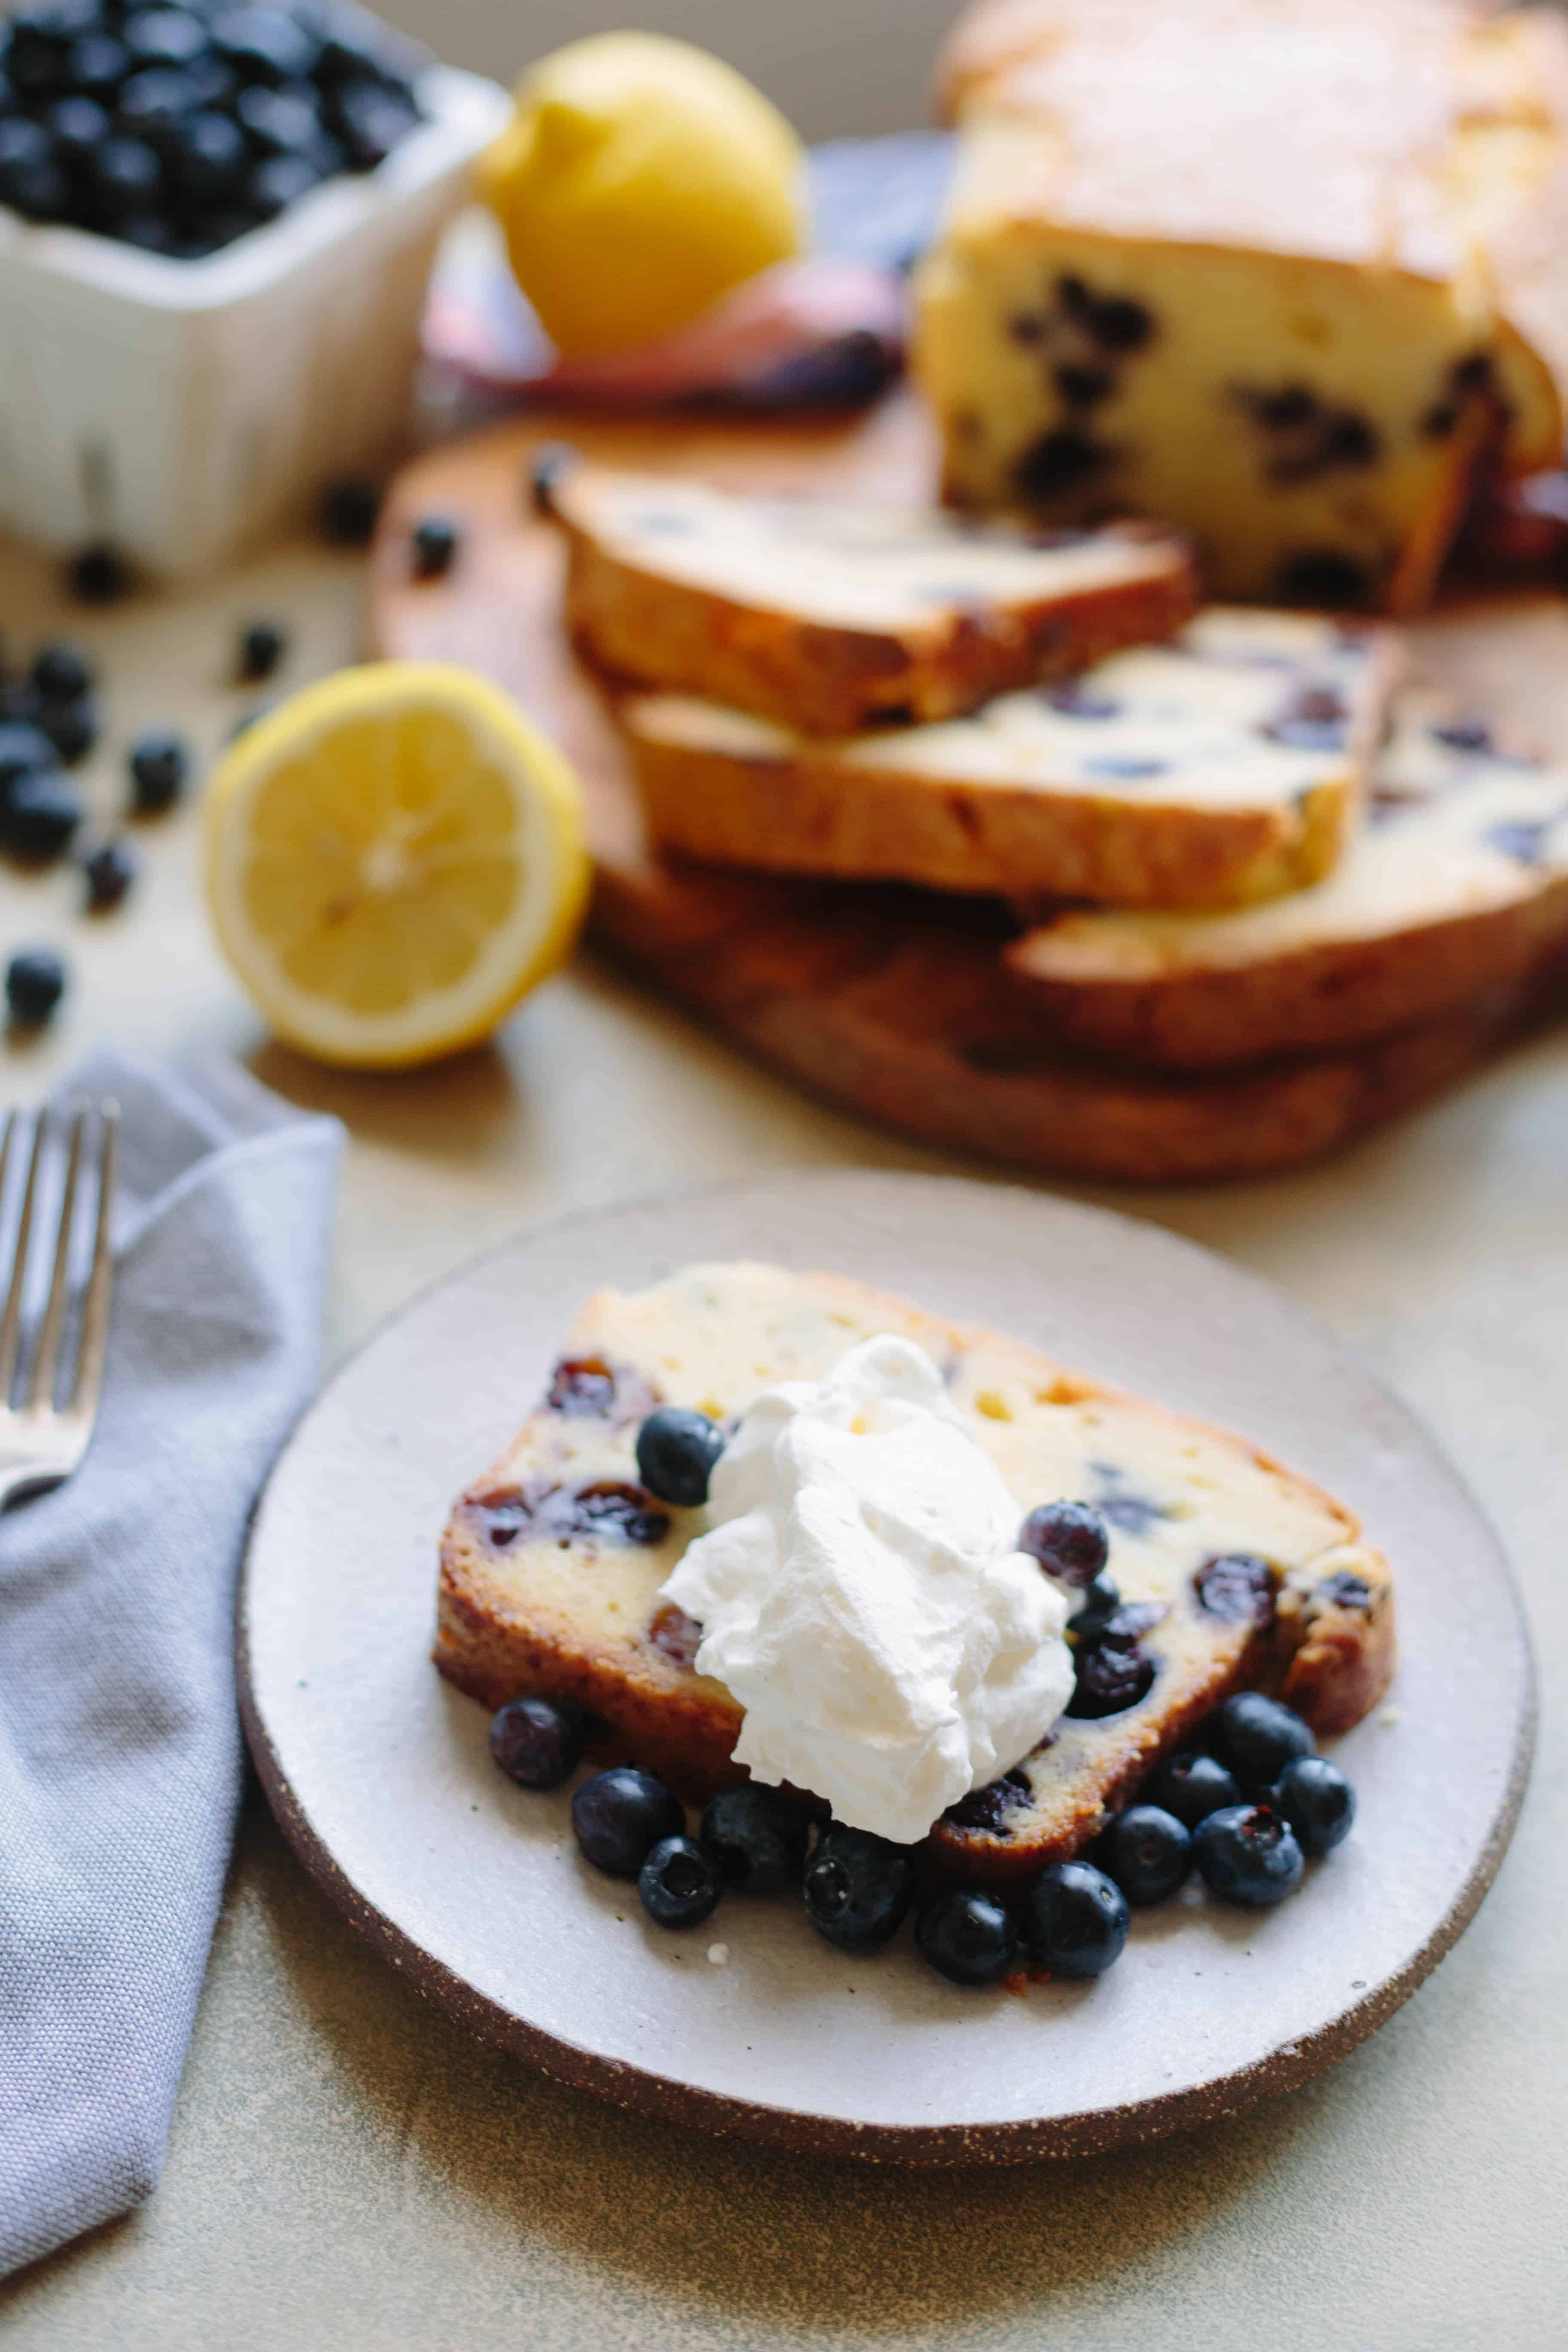 Slice of blueberry lemon pound cake with fresh blueberries and whipped cream on a dessert plate.